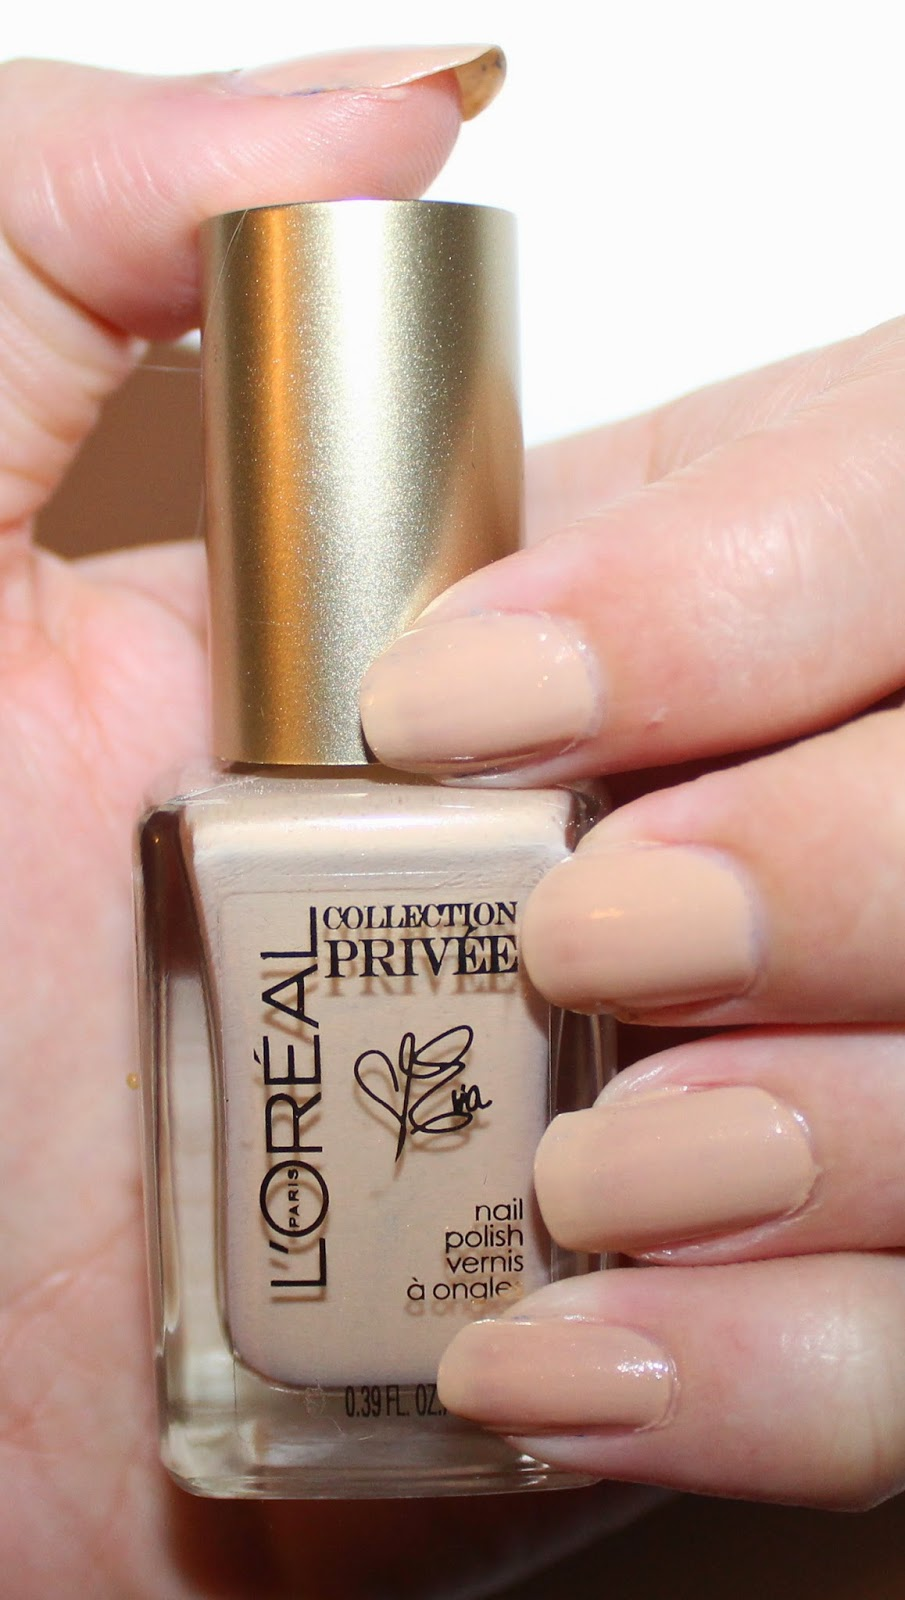 L'Oréal Collection Privée Exclusive Nudes Nail Polishes Eva